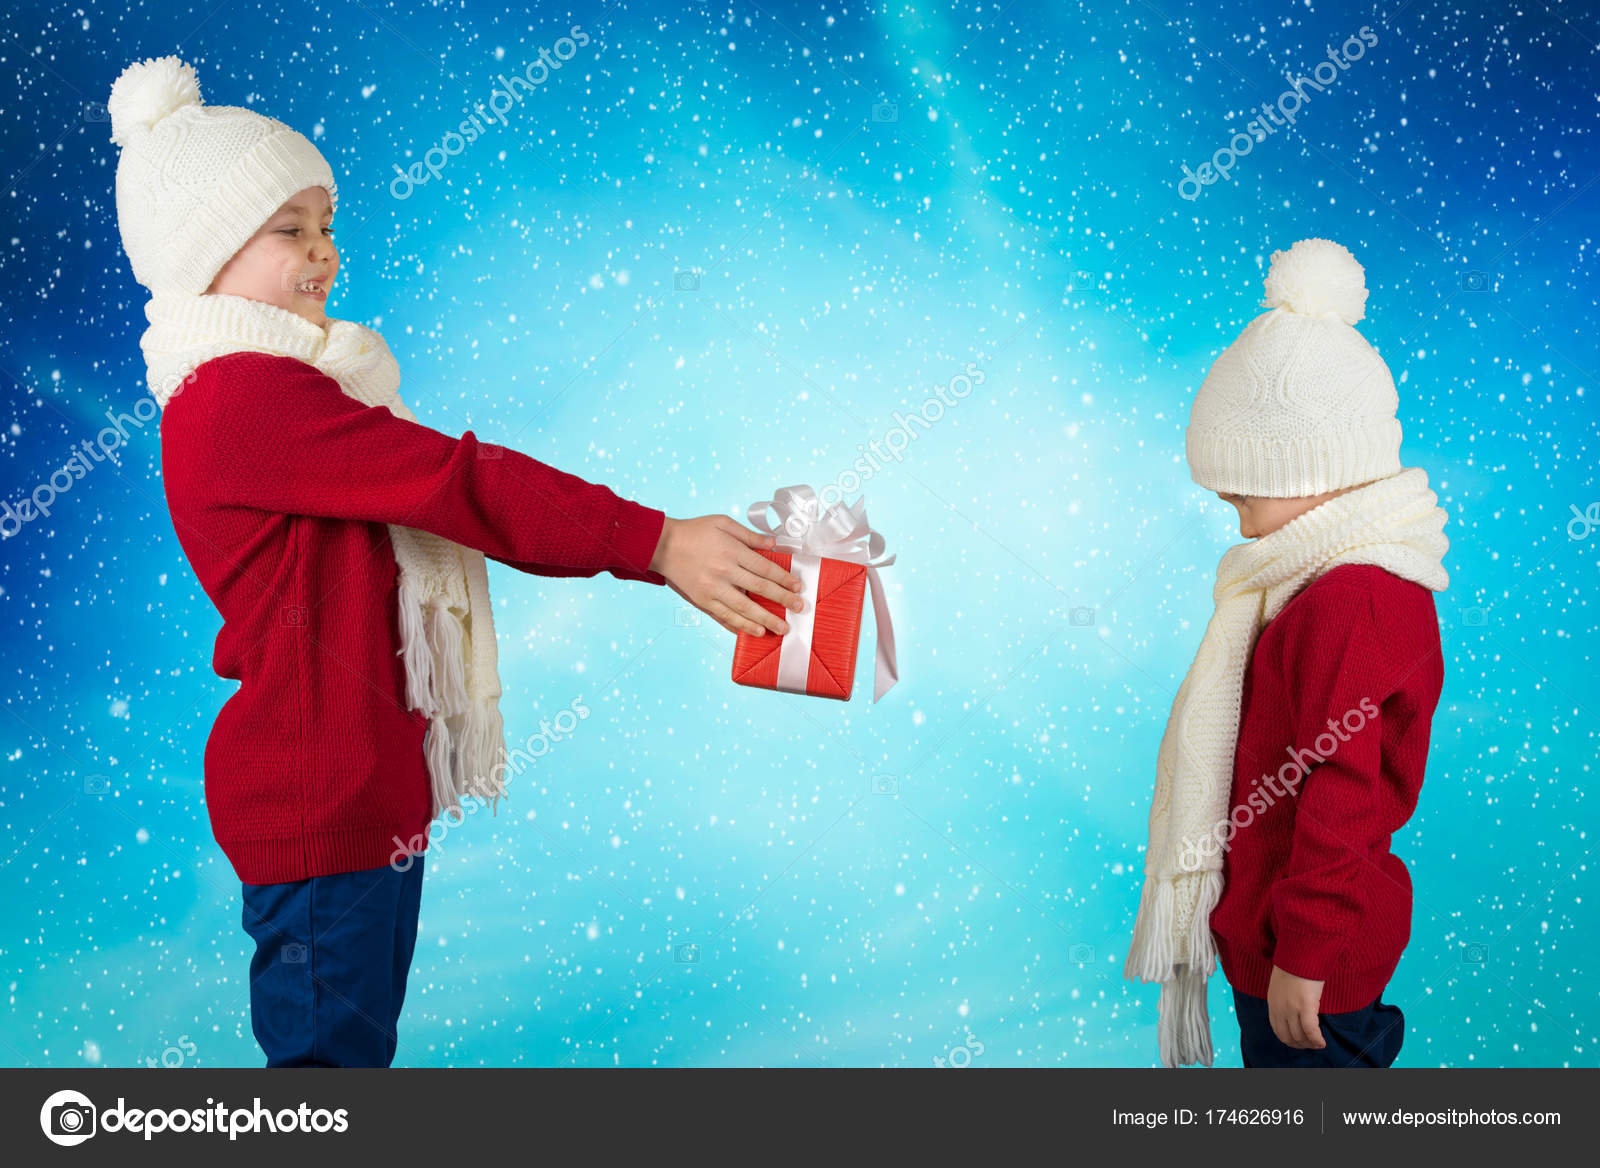 Merry Christmas Brother.Images Merry Christmas Brother Merry Christmas And Happy